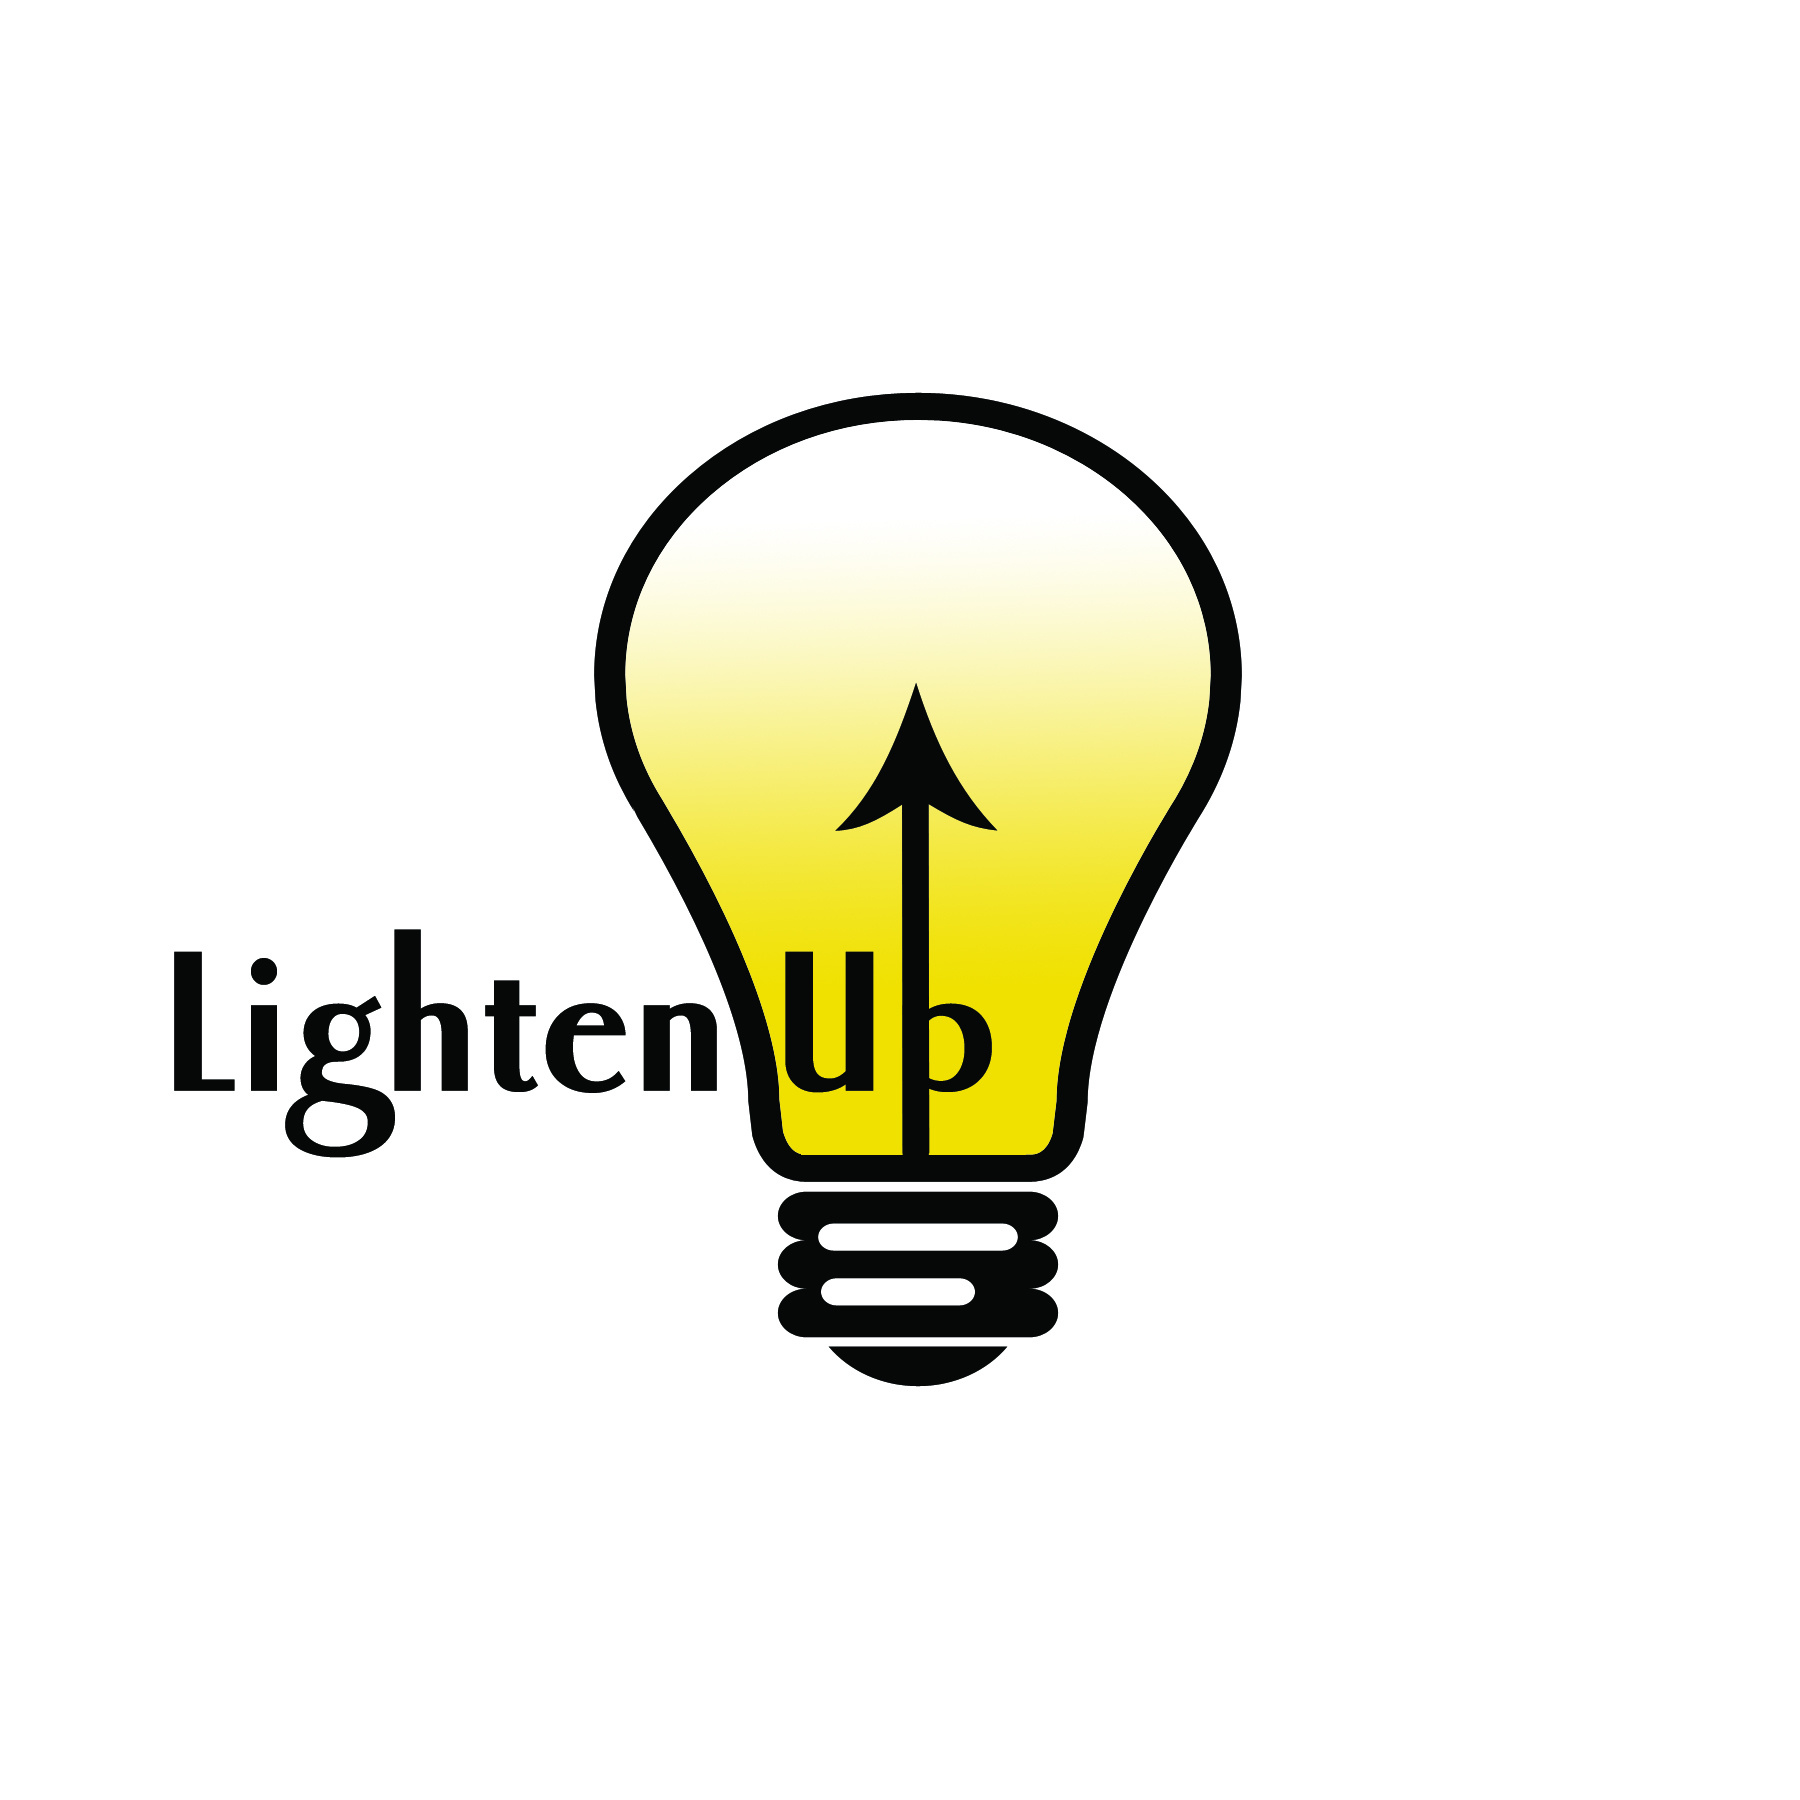 lighten up-lighting store logo